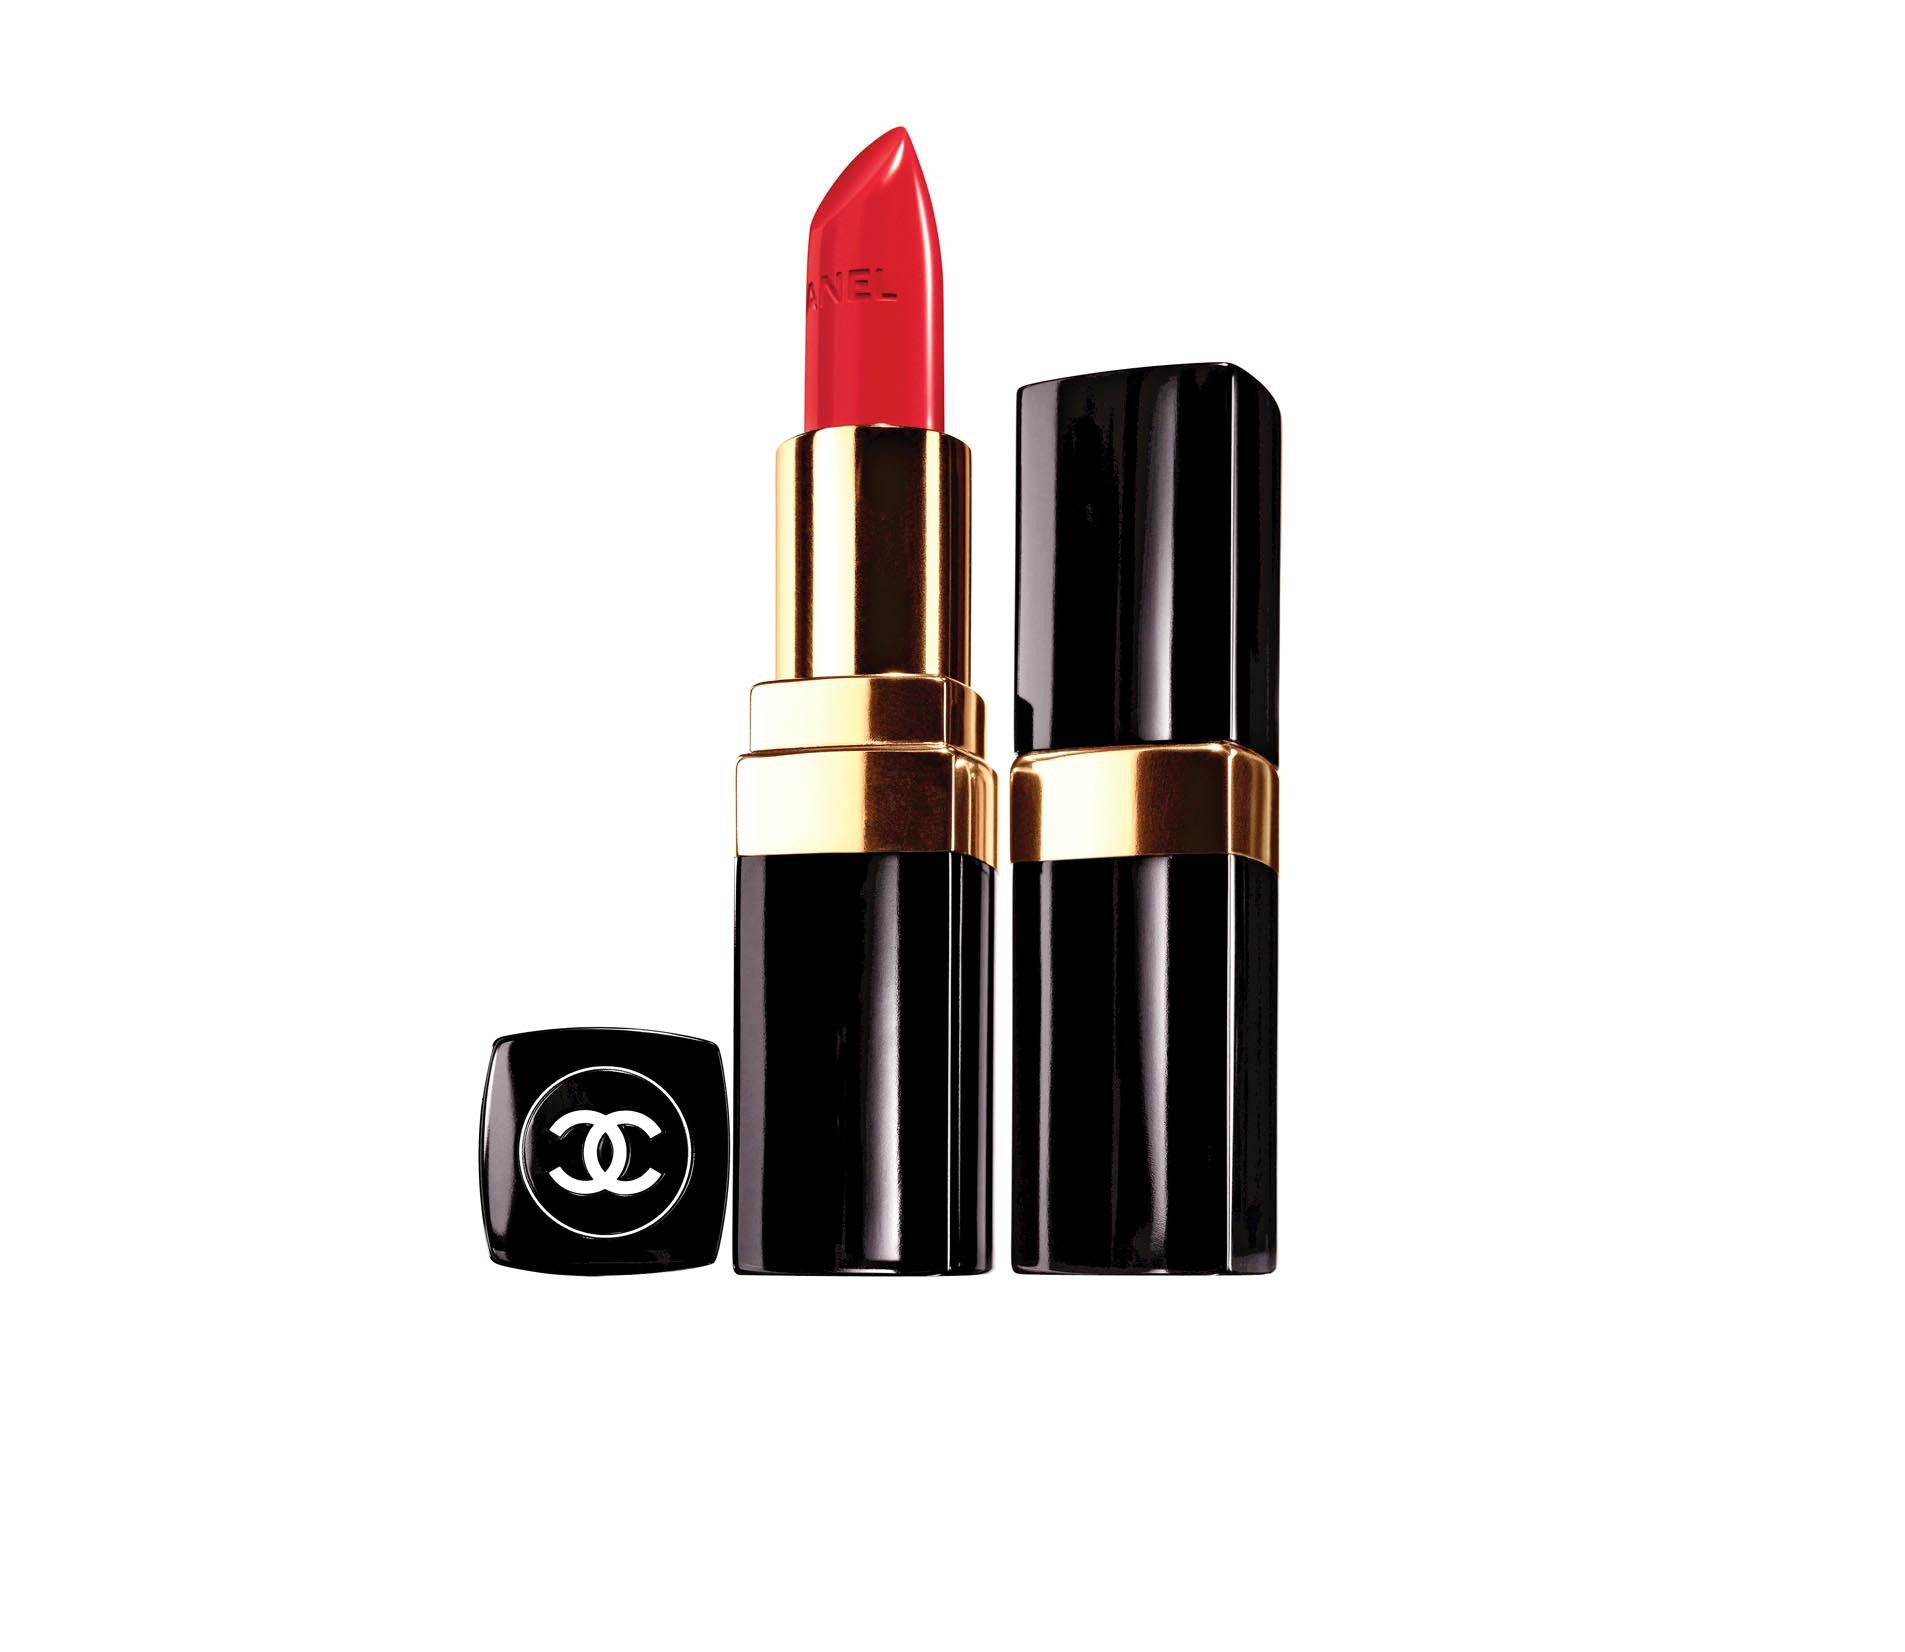 Chanel Rouge Coco Hydrating Crème Lip Colour in Gabrielle ...